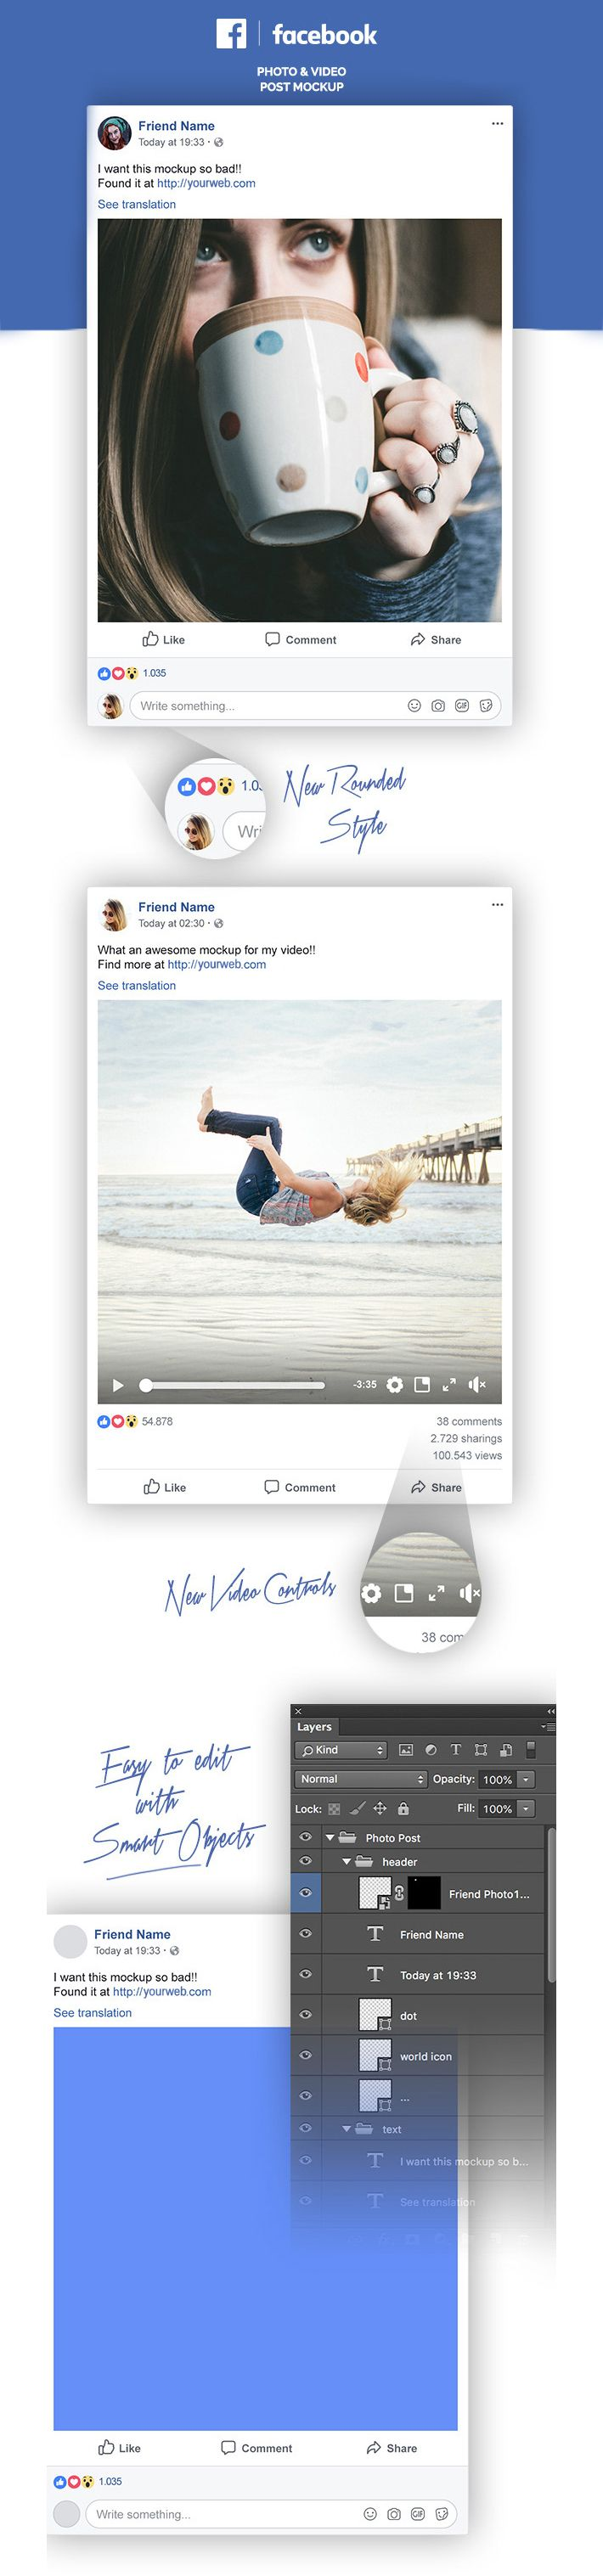 Awesome Facebook Post Template Free Download Psd Design Facebook Post Template Facebook Post Mockup Templates Free Download